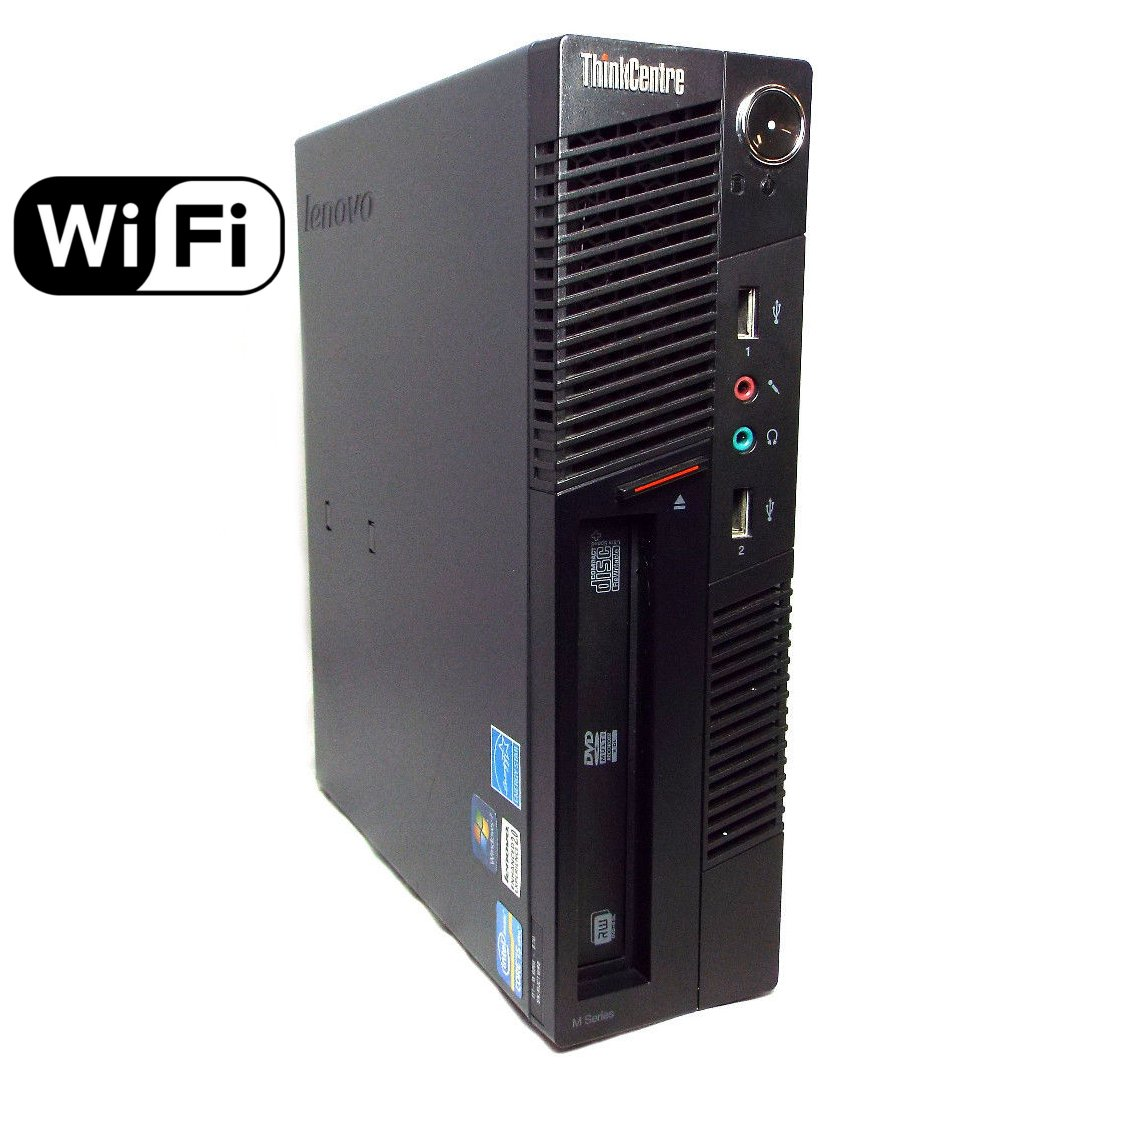 lenovo-thinkcentre-premium-high-performance-m91p-desktop-computer-intel-core-i5-quad-core-processor-31ghz-8gb-ram-1tb-hdd-windows-10-home-renewed